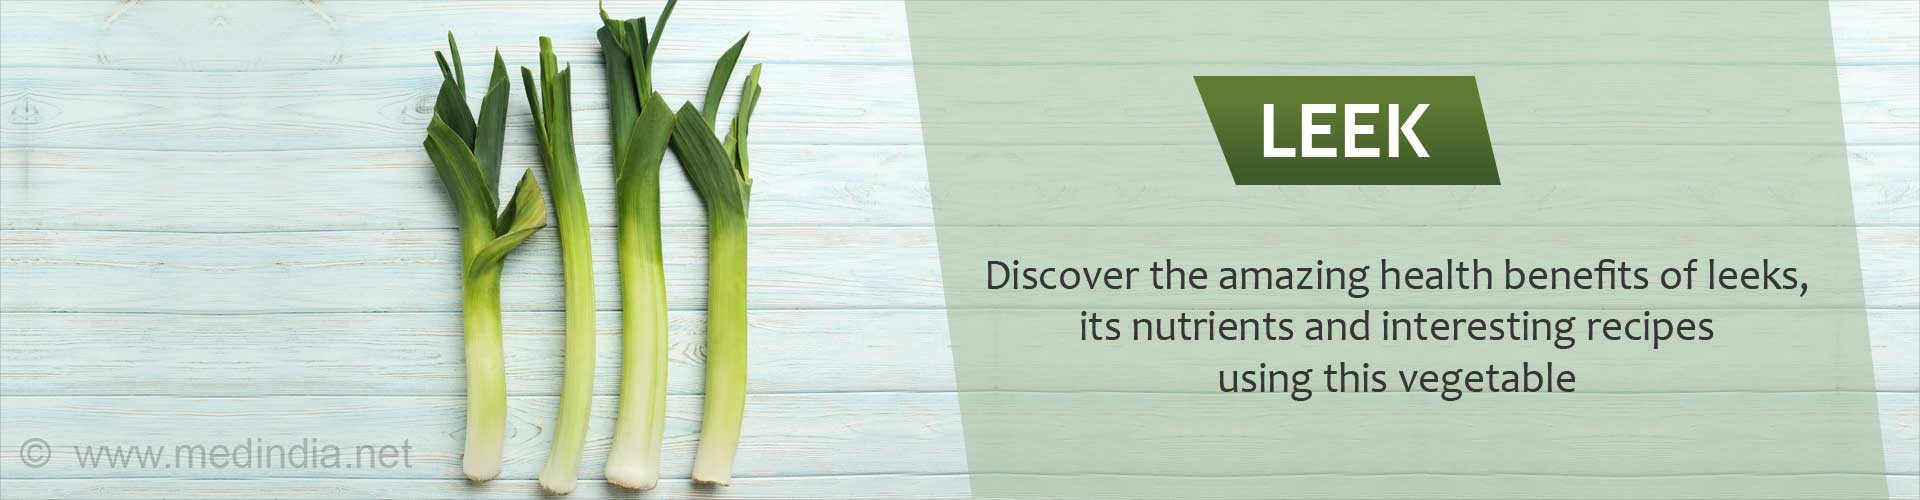 Leeks - Discover the amazing benefits of leeks, its nutrients and interesting recipes using this vegetable